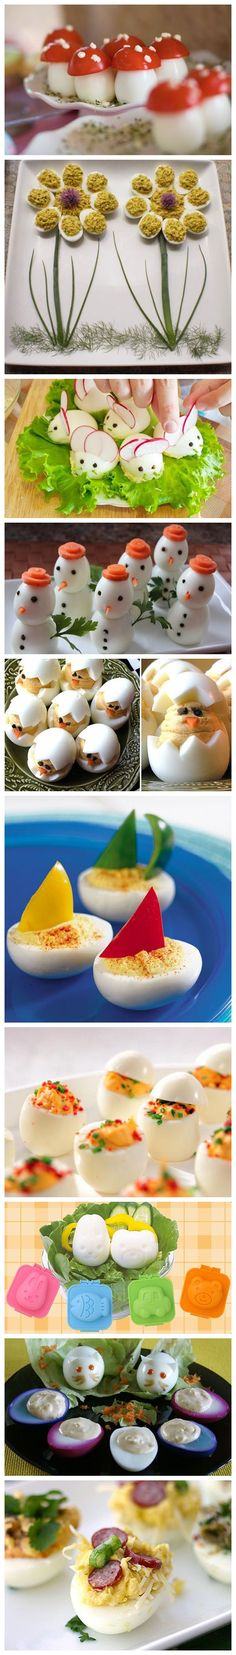 Easter egg inspiration / google chinese translated, but the pictures mostly speak for themselves